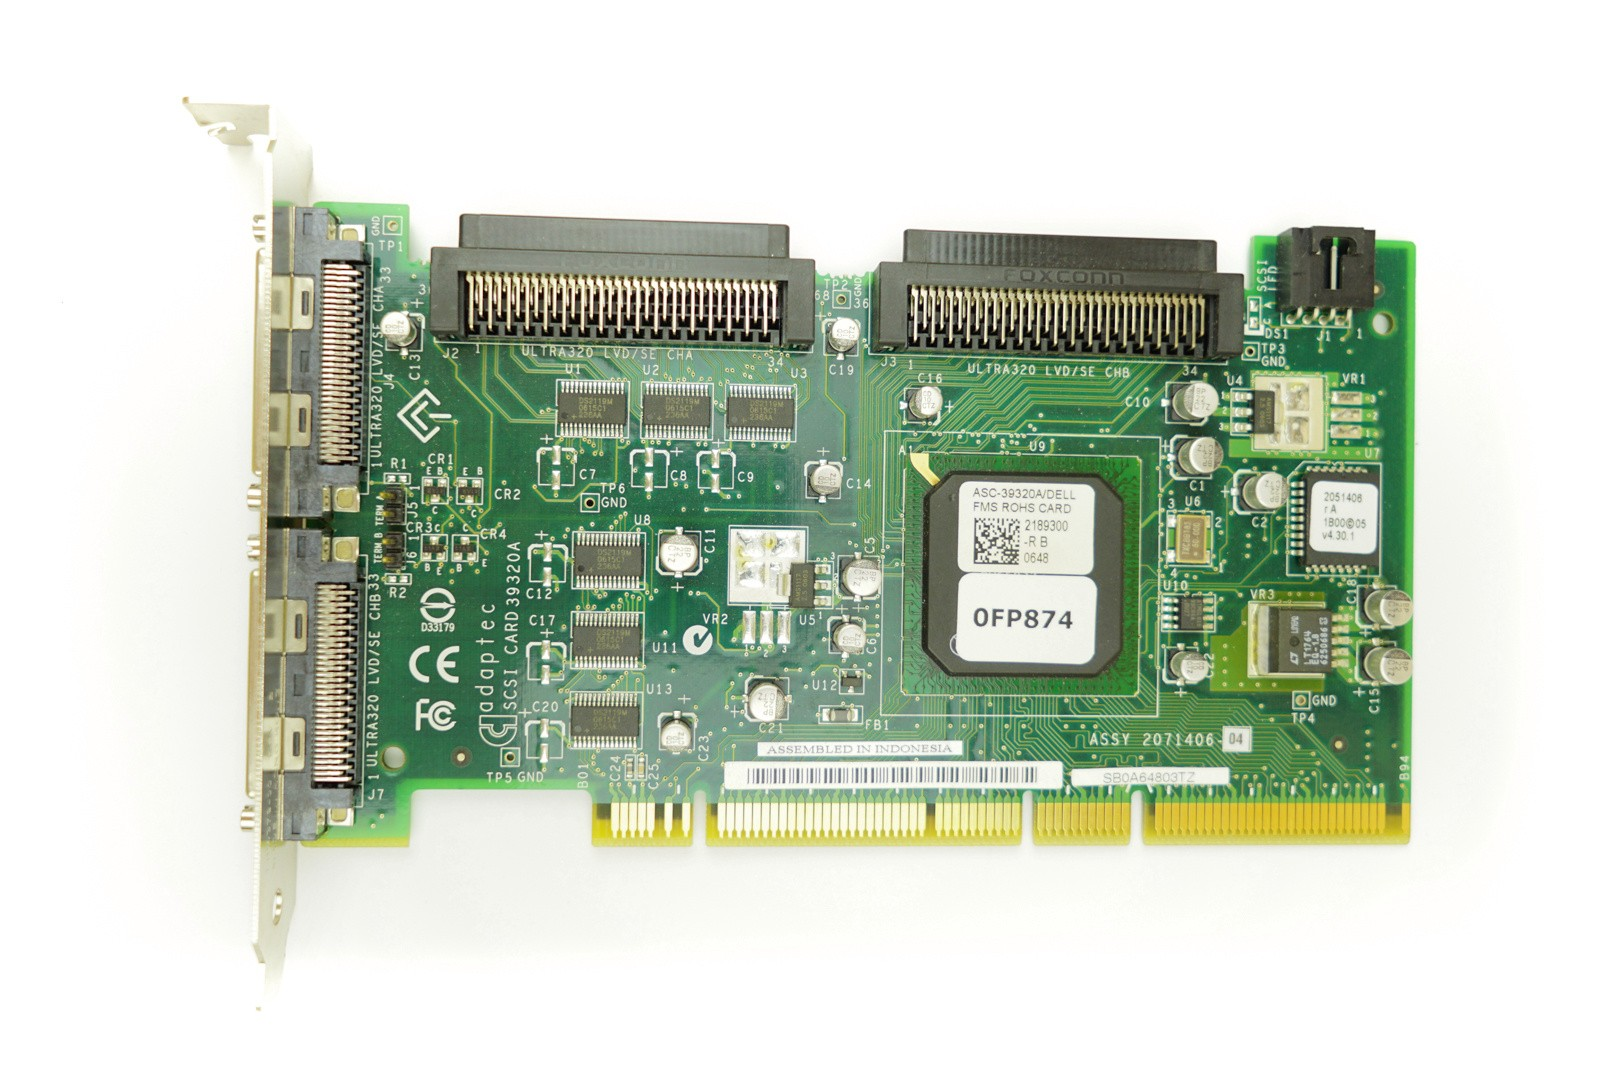 ASC-39320A DELL DRIVERS FOR WINDOWS MAC